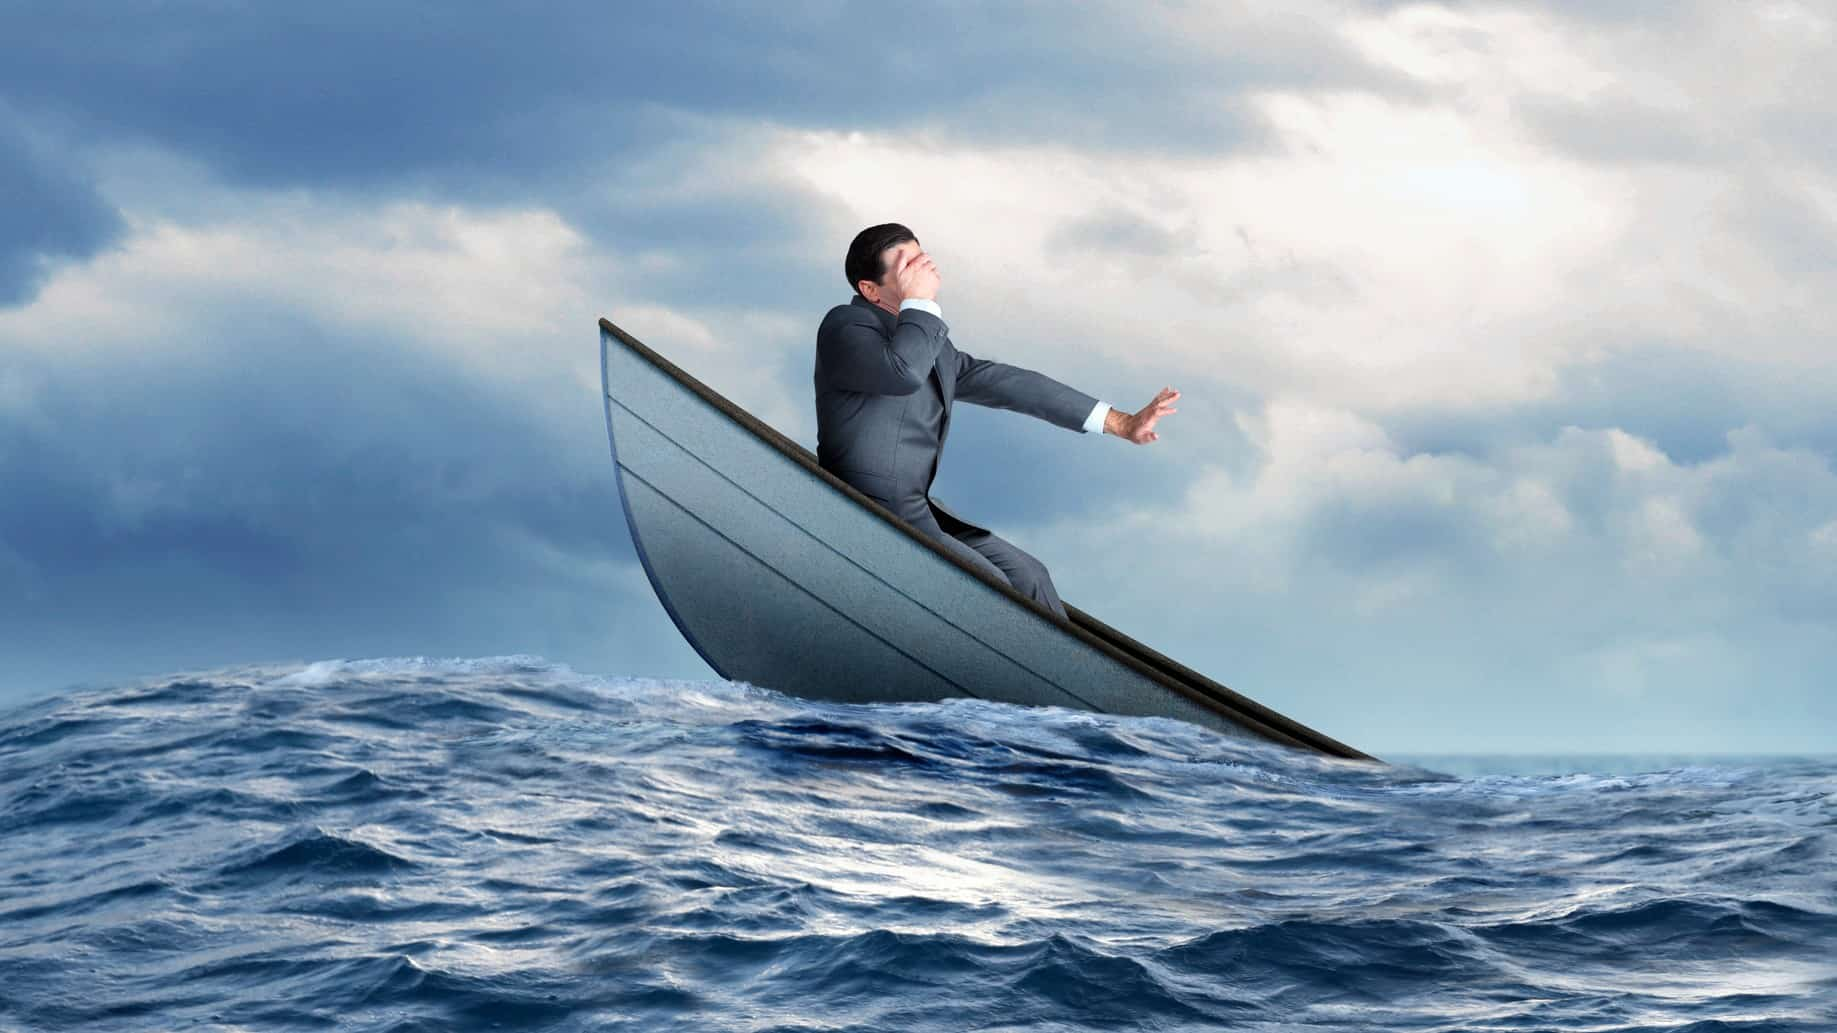 Businessman puts hand over eyes on a sinking boat in ocean